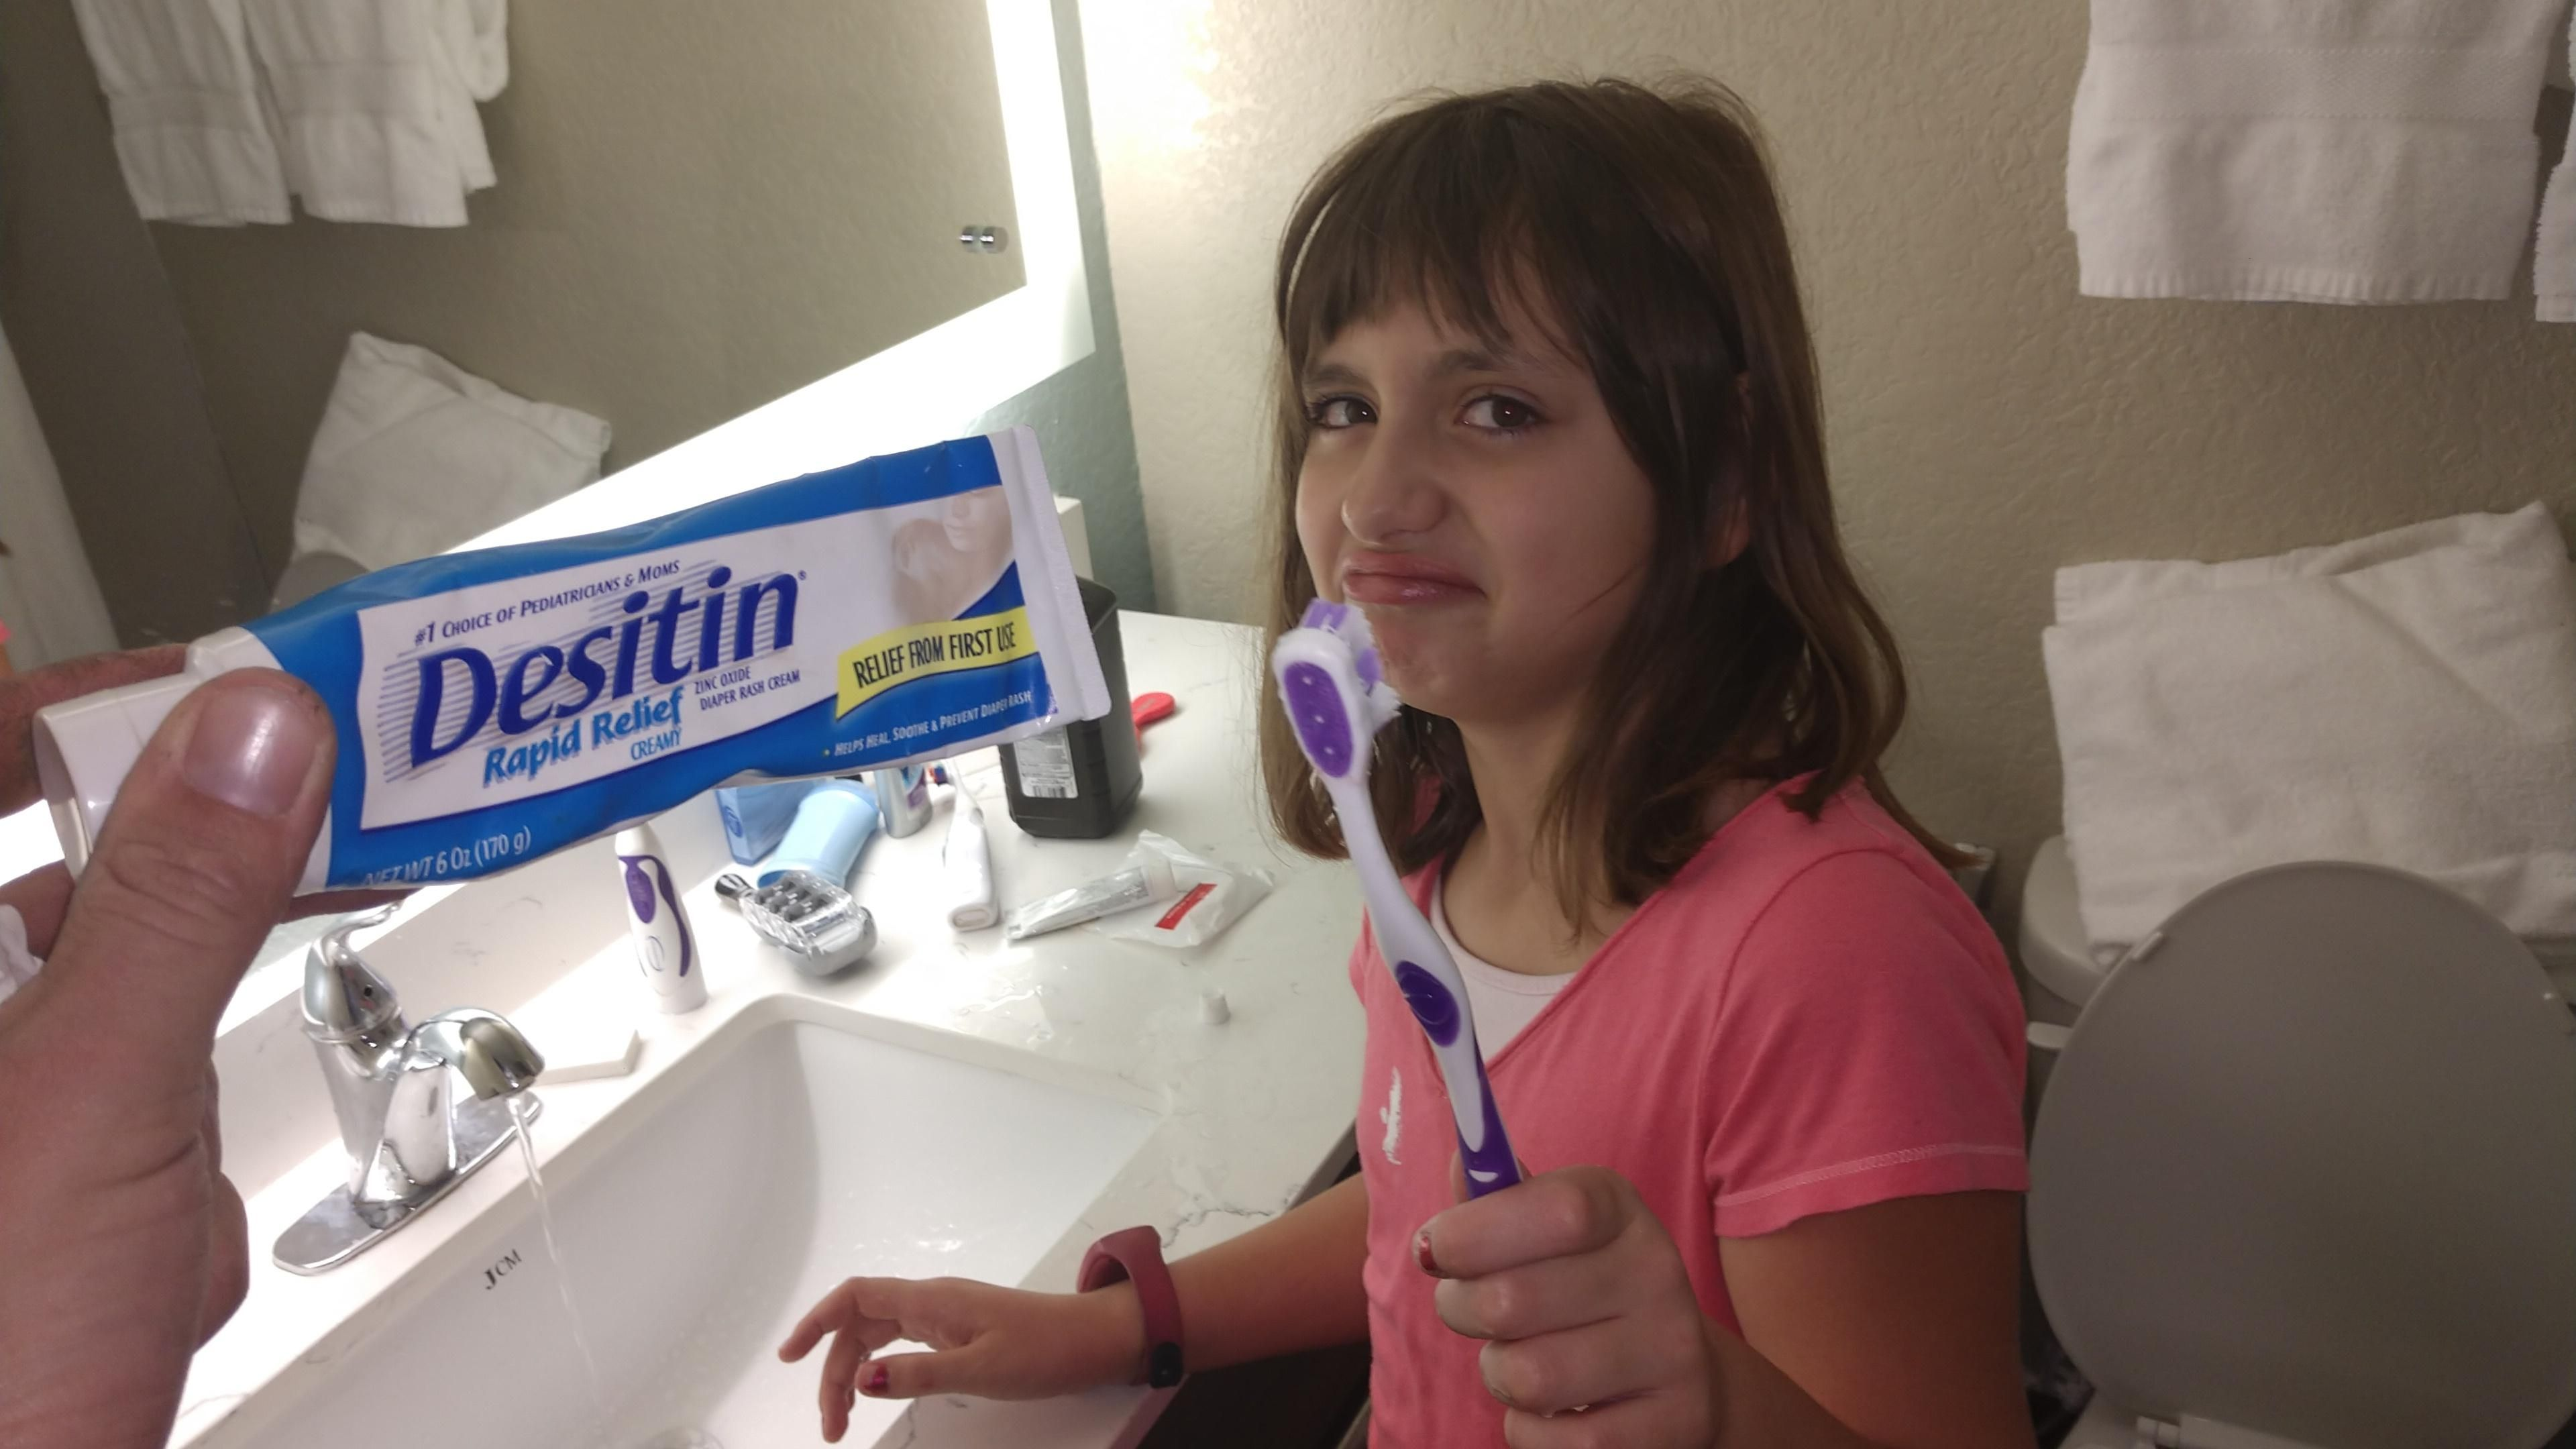 No joke. She fought through it for a full minute before bringing it to us and saying the tooth paste was gross.